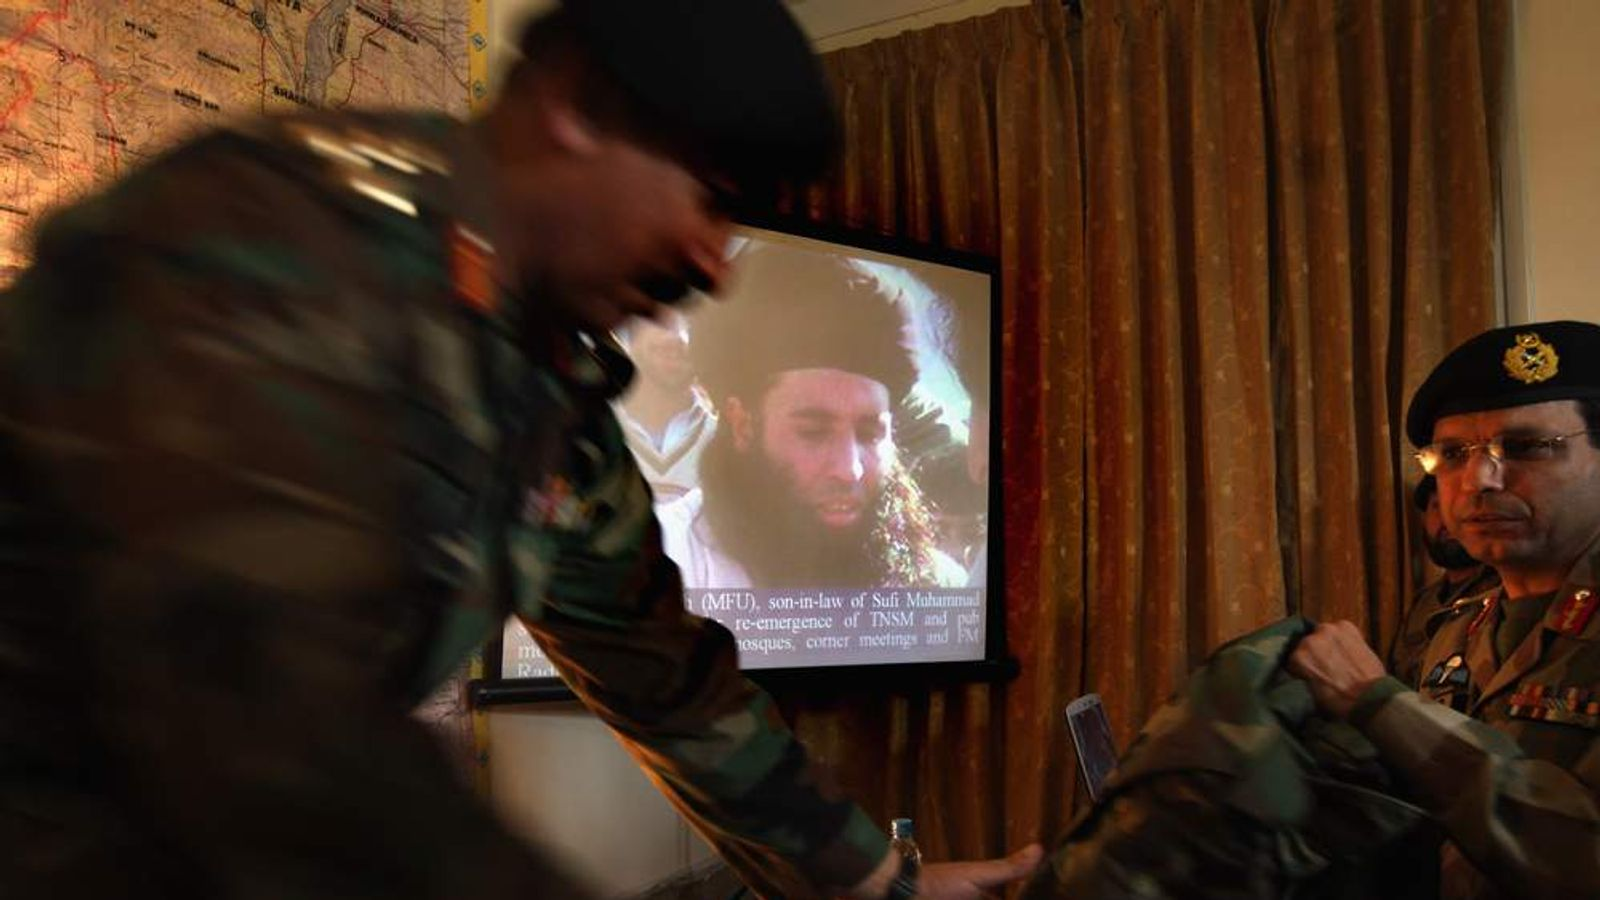 Pakistani Army officers show a photo of radical Islamic Cleric and militant leader Muaulana Fazlullah